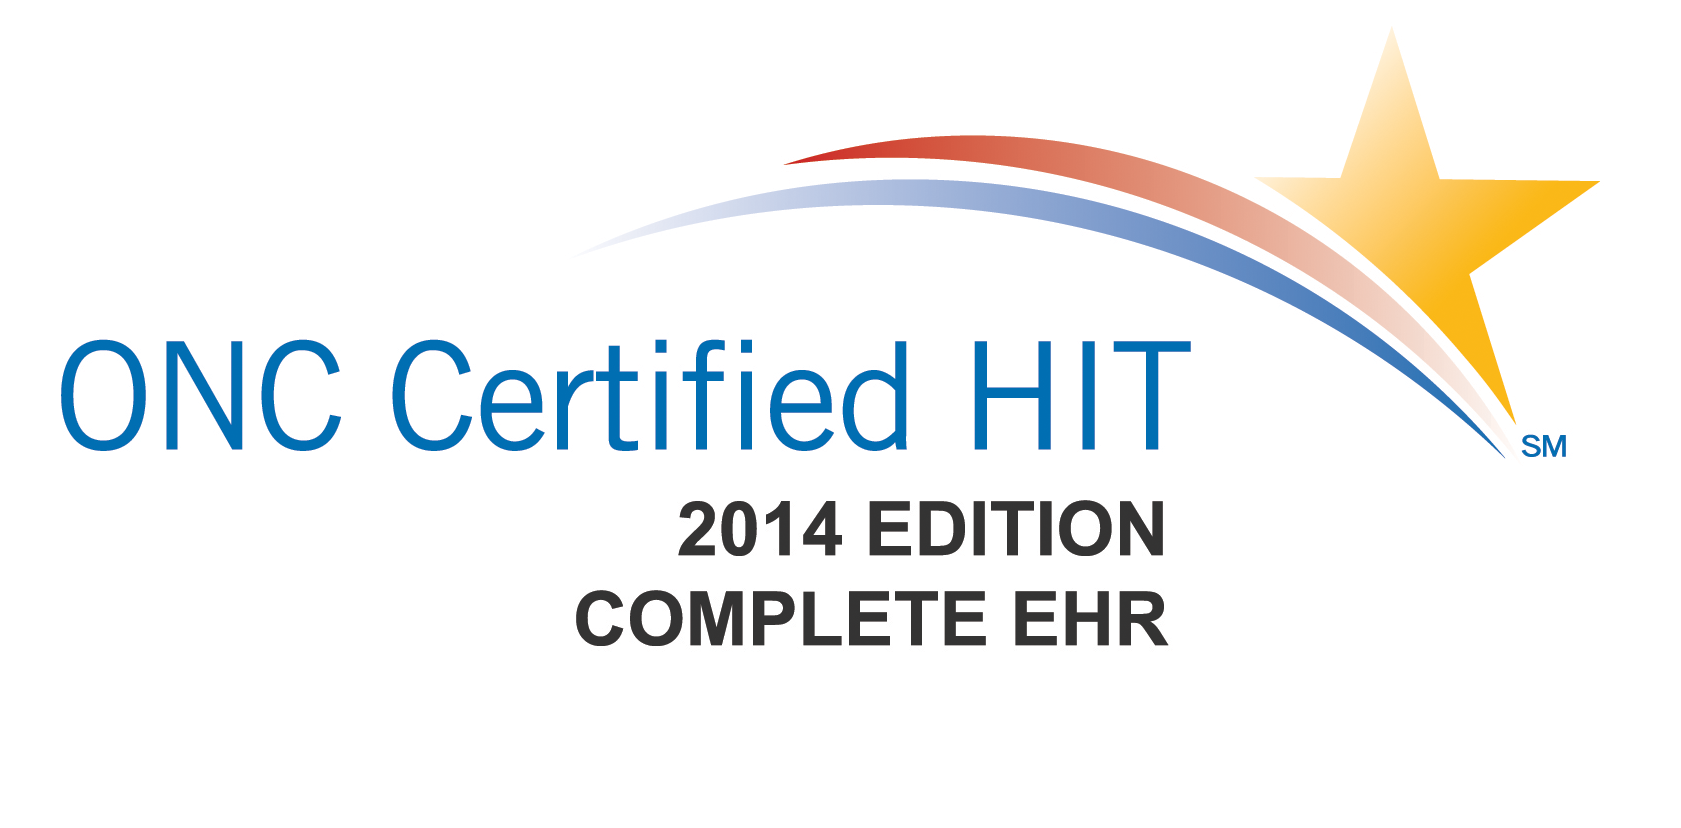 Federal ehr meaningful use certification patagonia health ehr this means that patagonia health ehr meets 100 percent of 22 general criteria and 6 required clinical quality criteria to verify certification status click xflitez Image collections